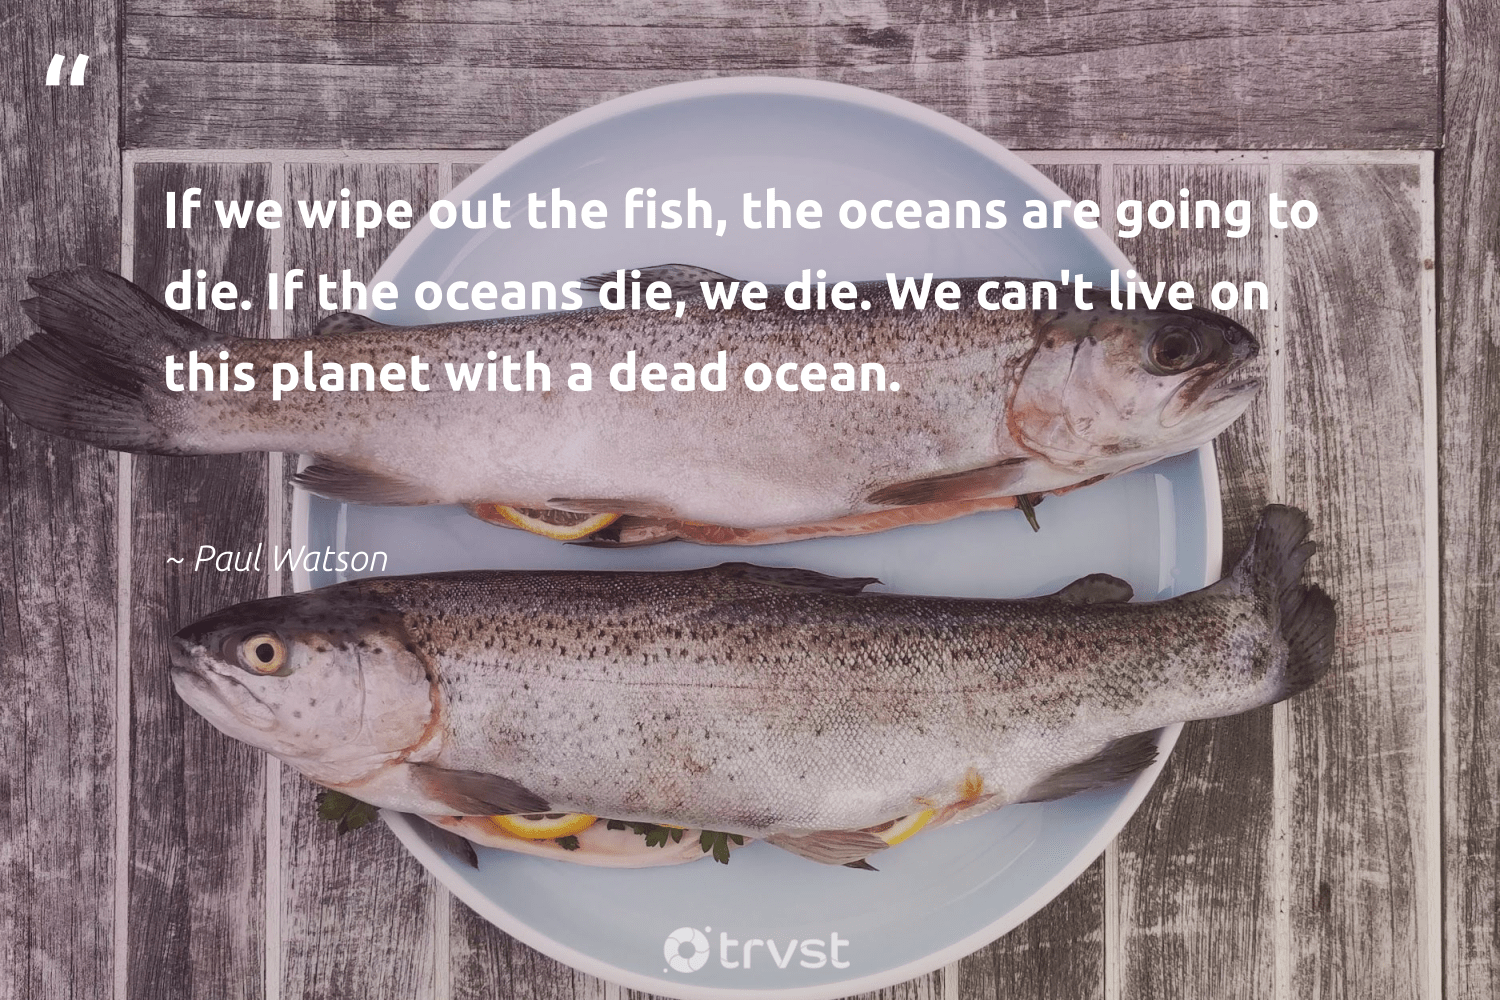 """""""If we wipe out the fish, the oceans are going to die. If the oceans die, we die. We can't live on this planet with a dead ocean.""""  - Paul Watson #trvst #quotes #planet #ocean #fish #oceans #environment #sealife #volunteer #ecoconscious #mothernature #marinelife"""